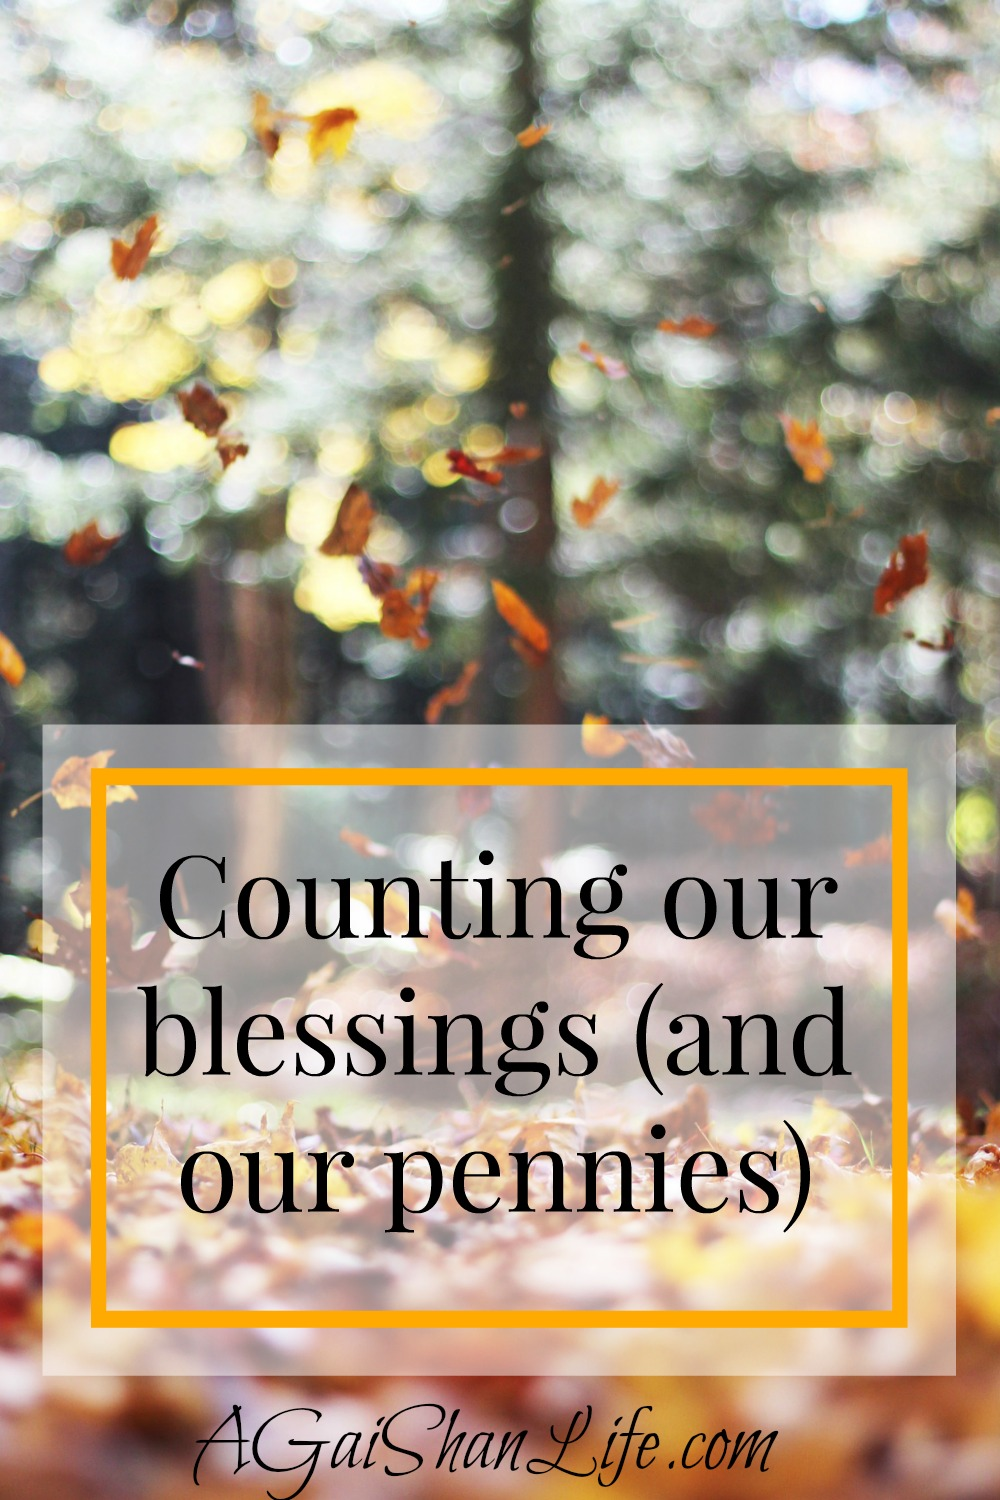 Counting our blessings and taking the long view